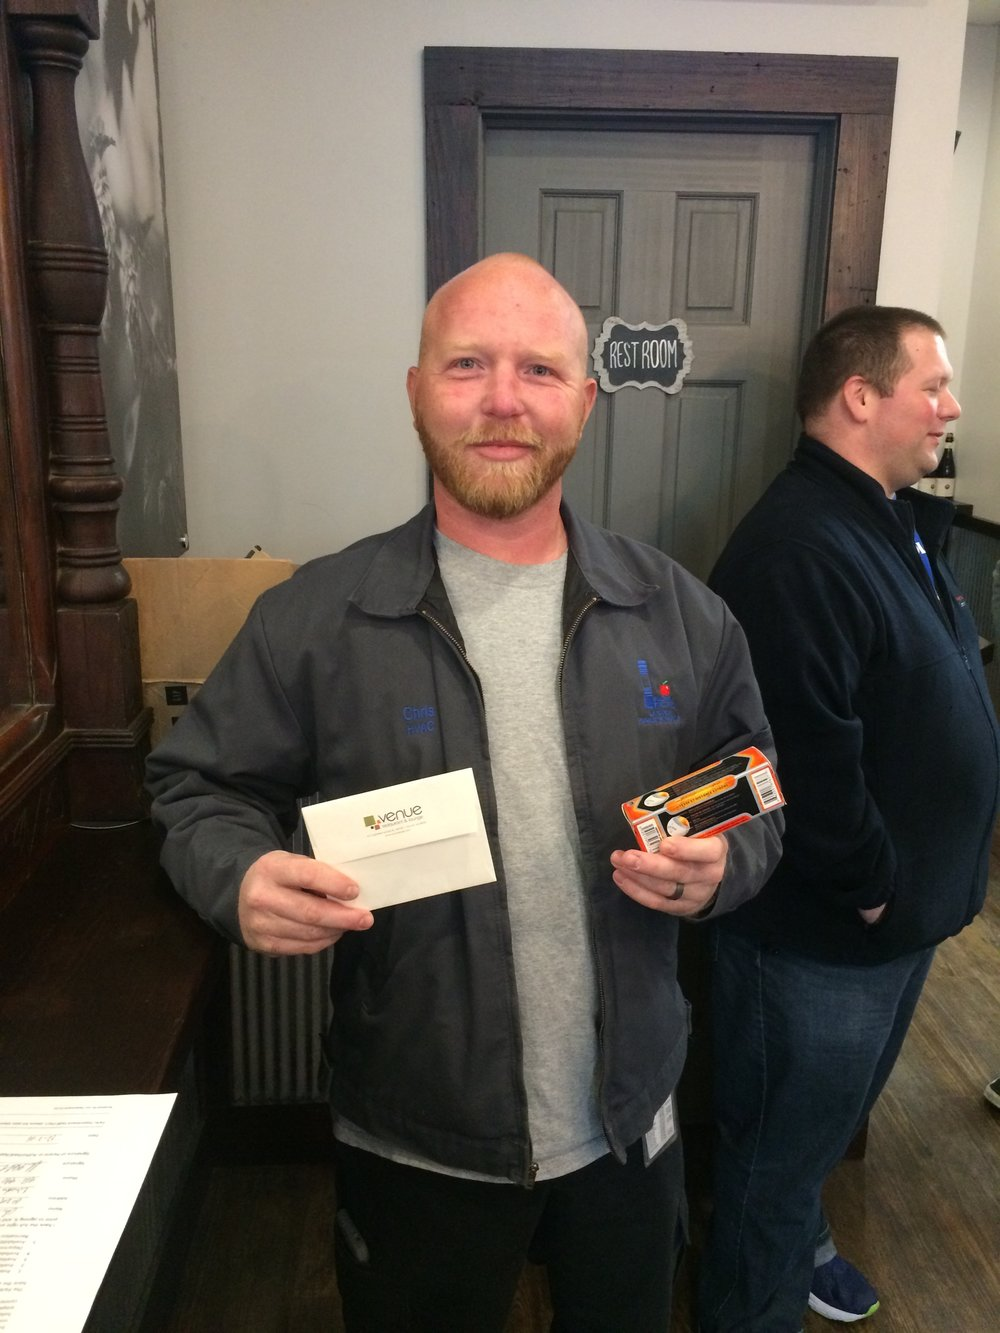 Chris Kahler - Venue $25 Gift Certificate Winner.JPG